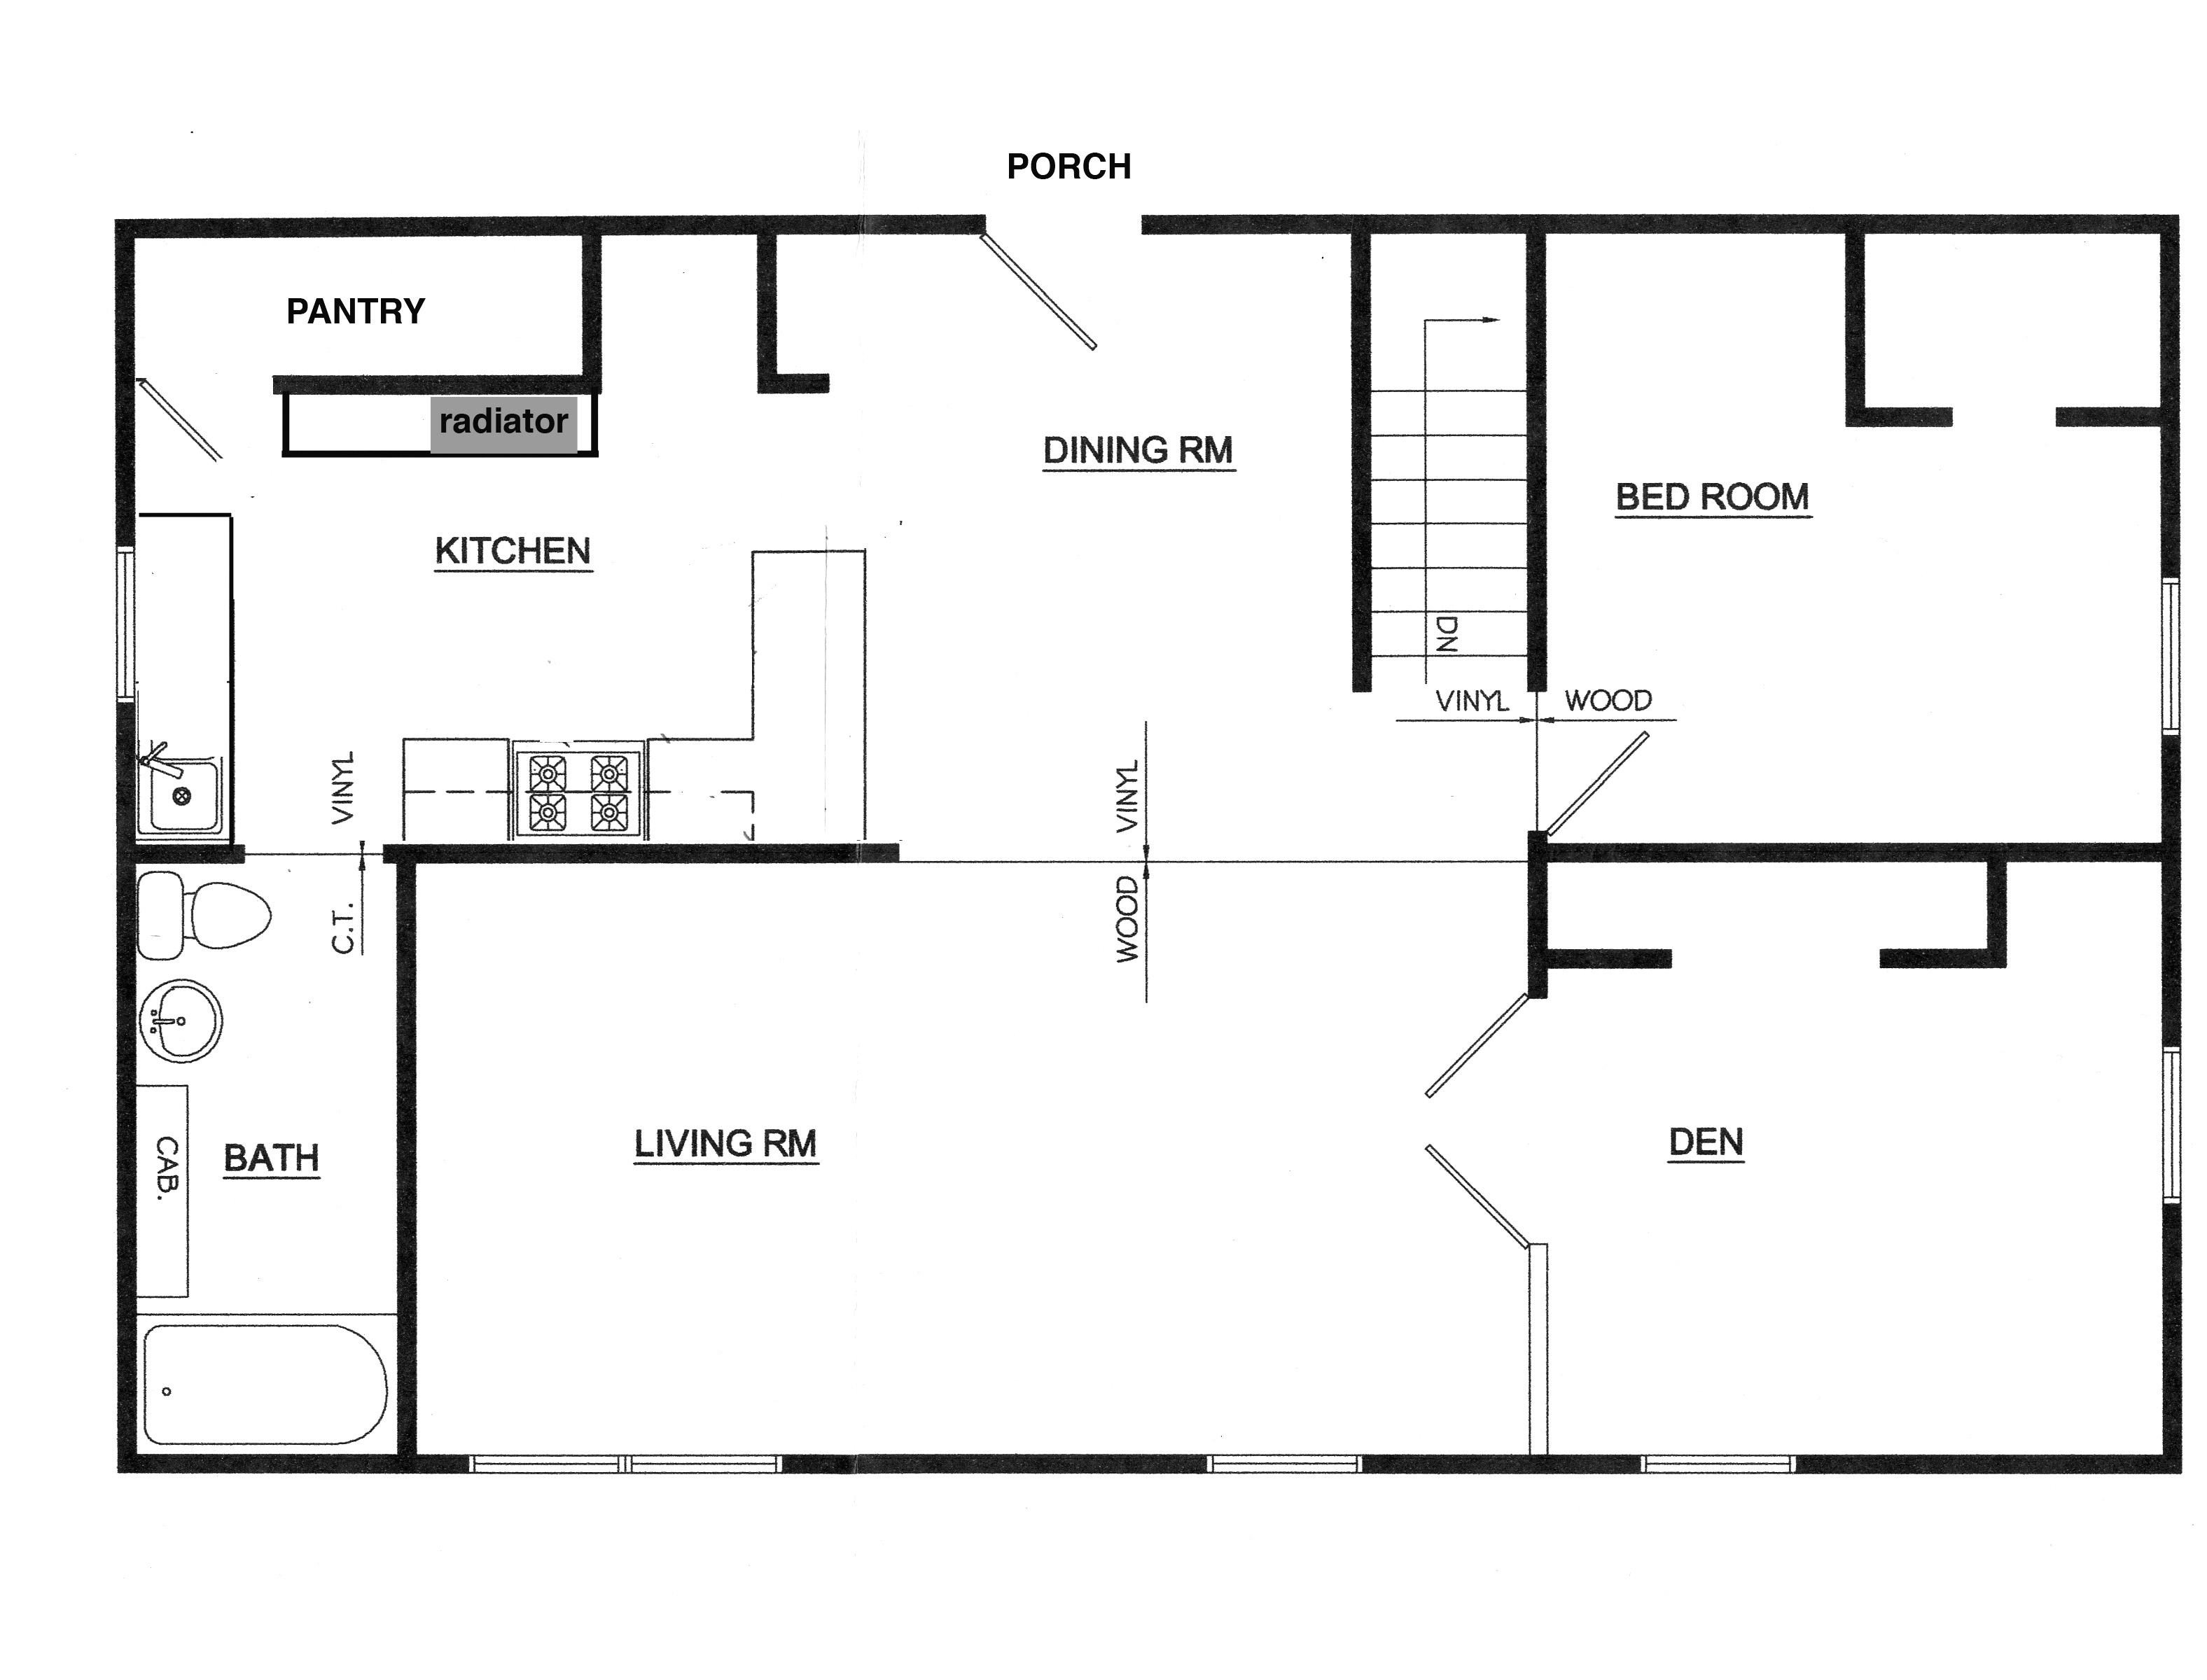 Is Building Permit Required To Replace Kitchen Cabinets Floor Plans | This Odd House